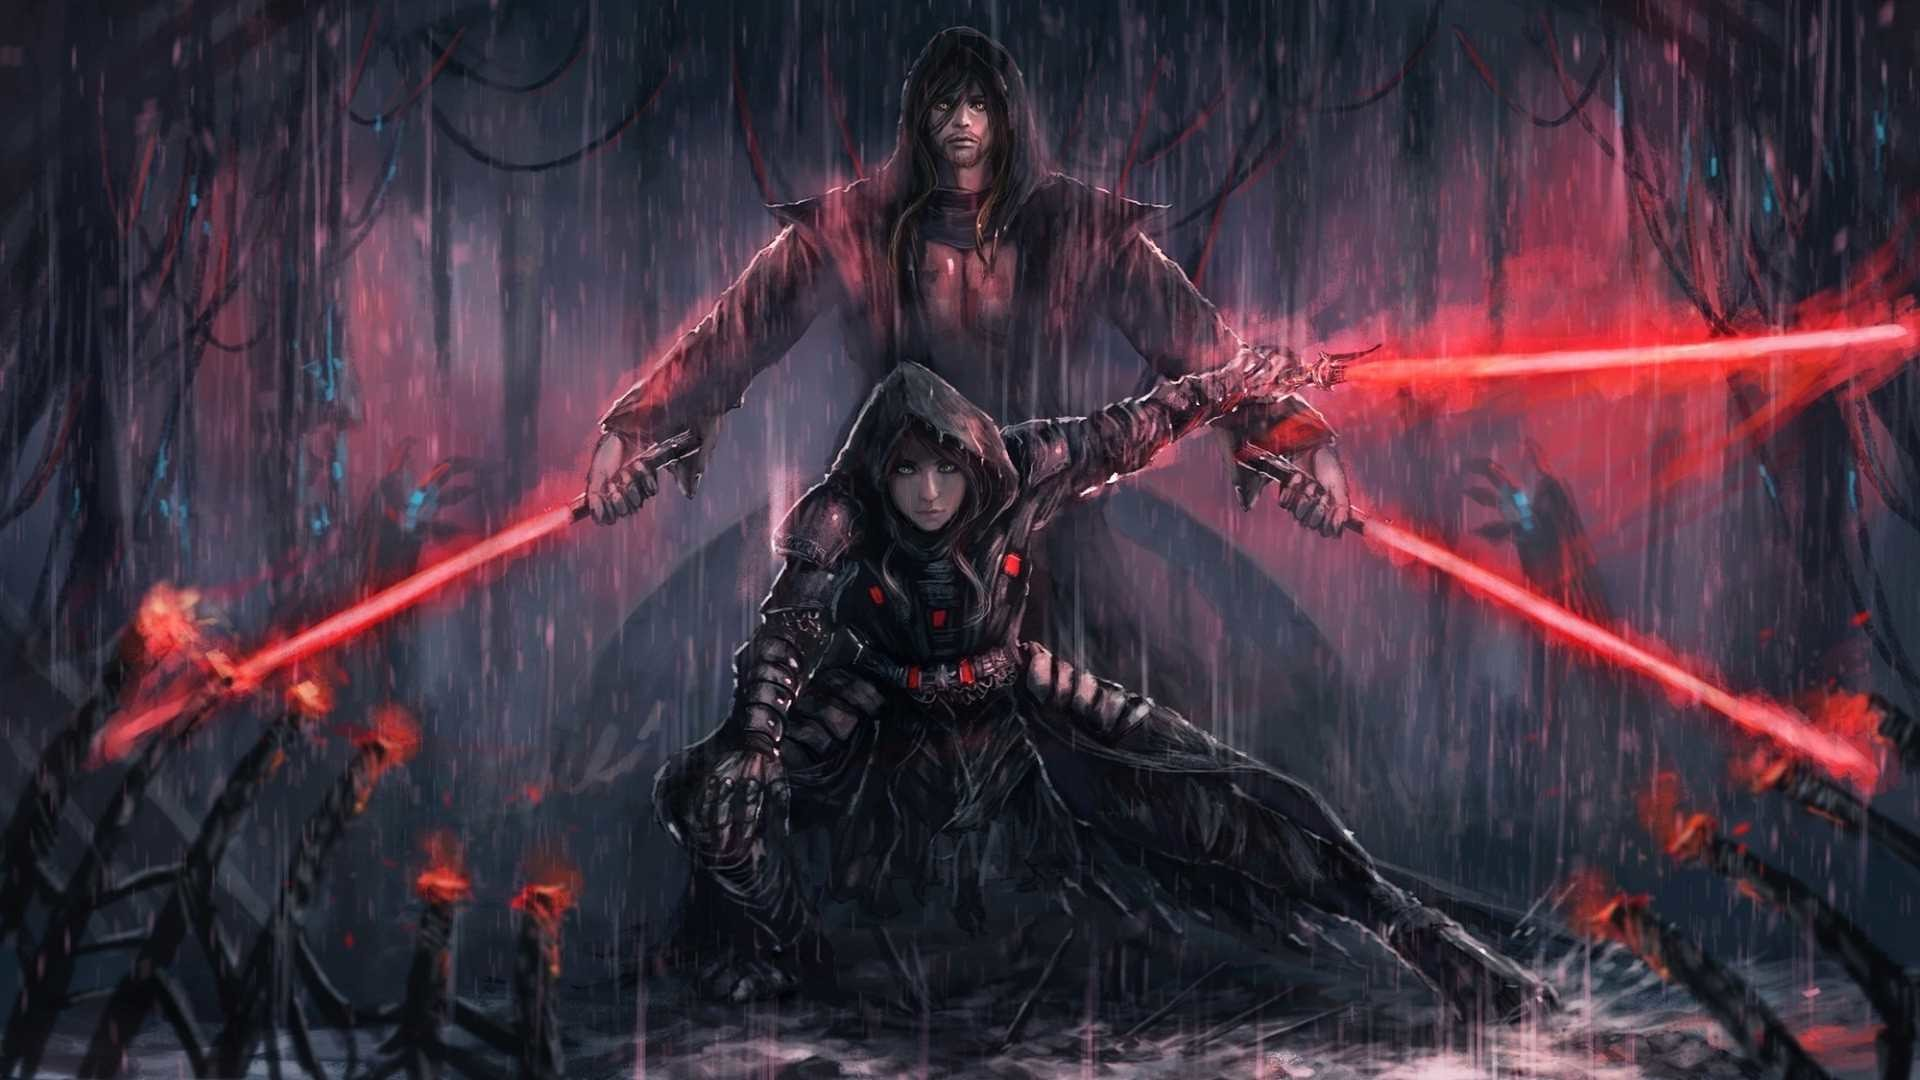 Res: 1920x1080, Star Wars Sith Wallpaper Hd Pics Backgrounds Unique For Pc